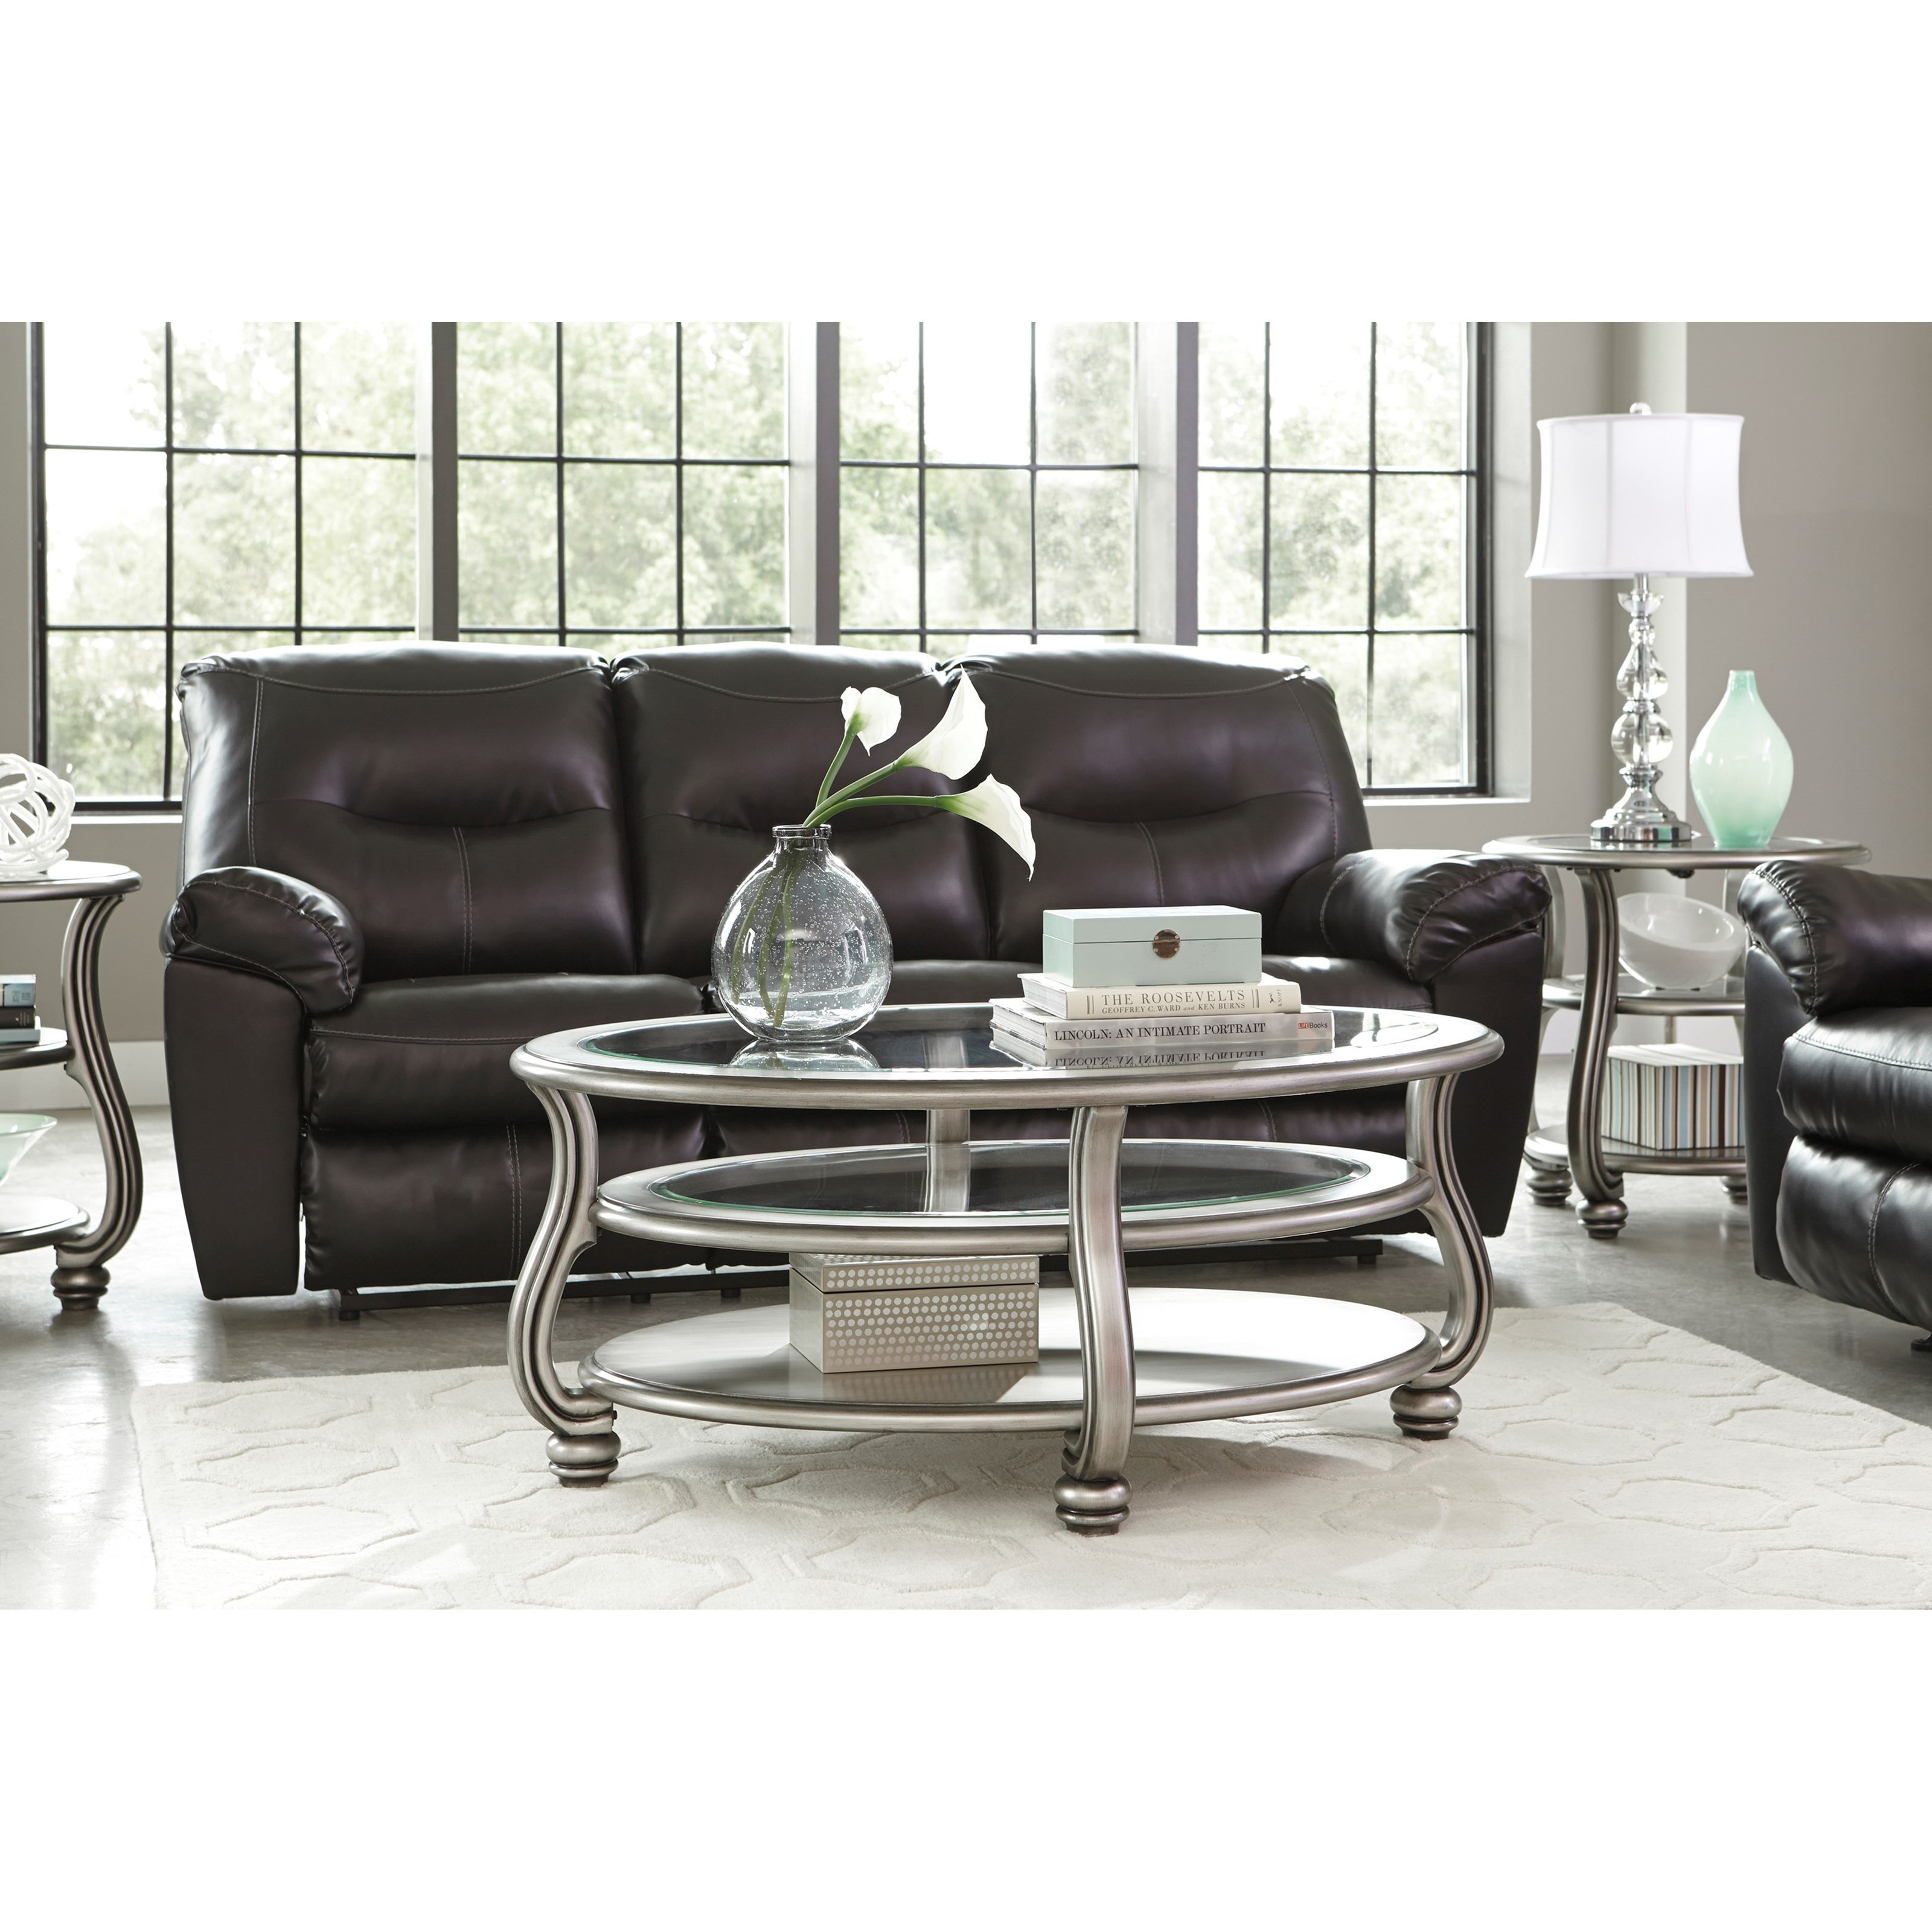 Best ideas about Ashley Furniture Coffee Tables . Save or Pin Ashley Signature Design Coralayne T820 0 Oval Cocktail Now.